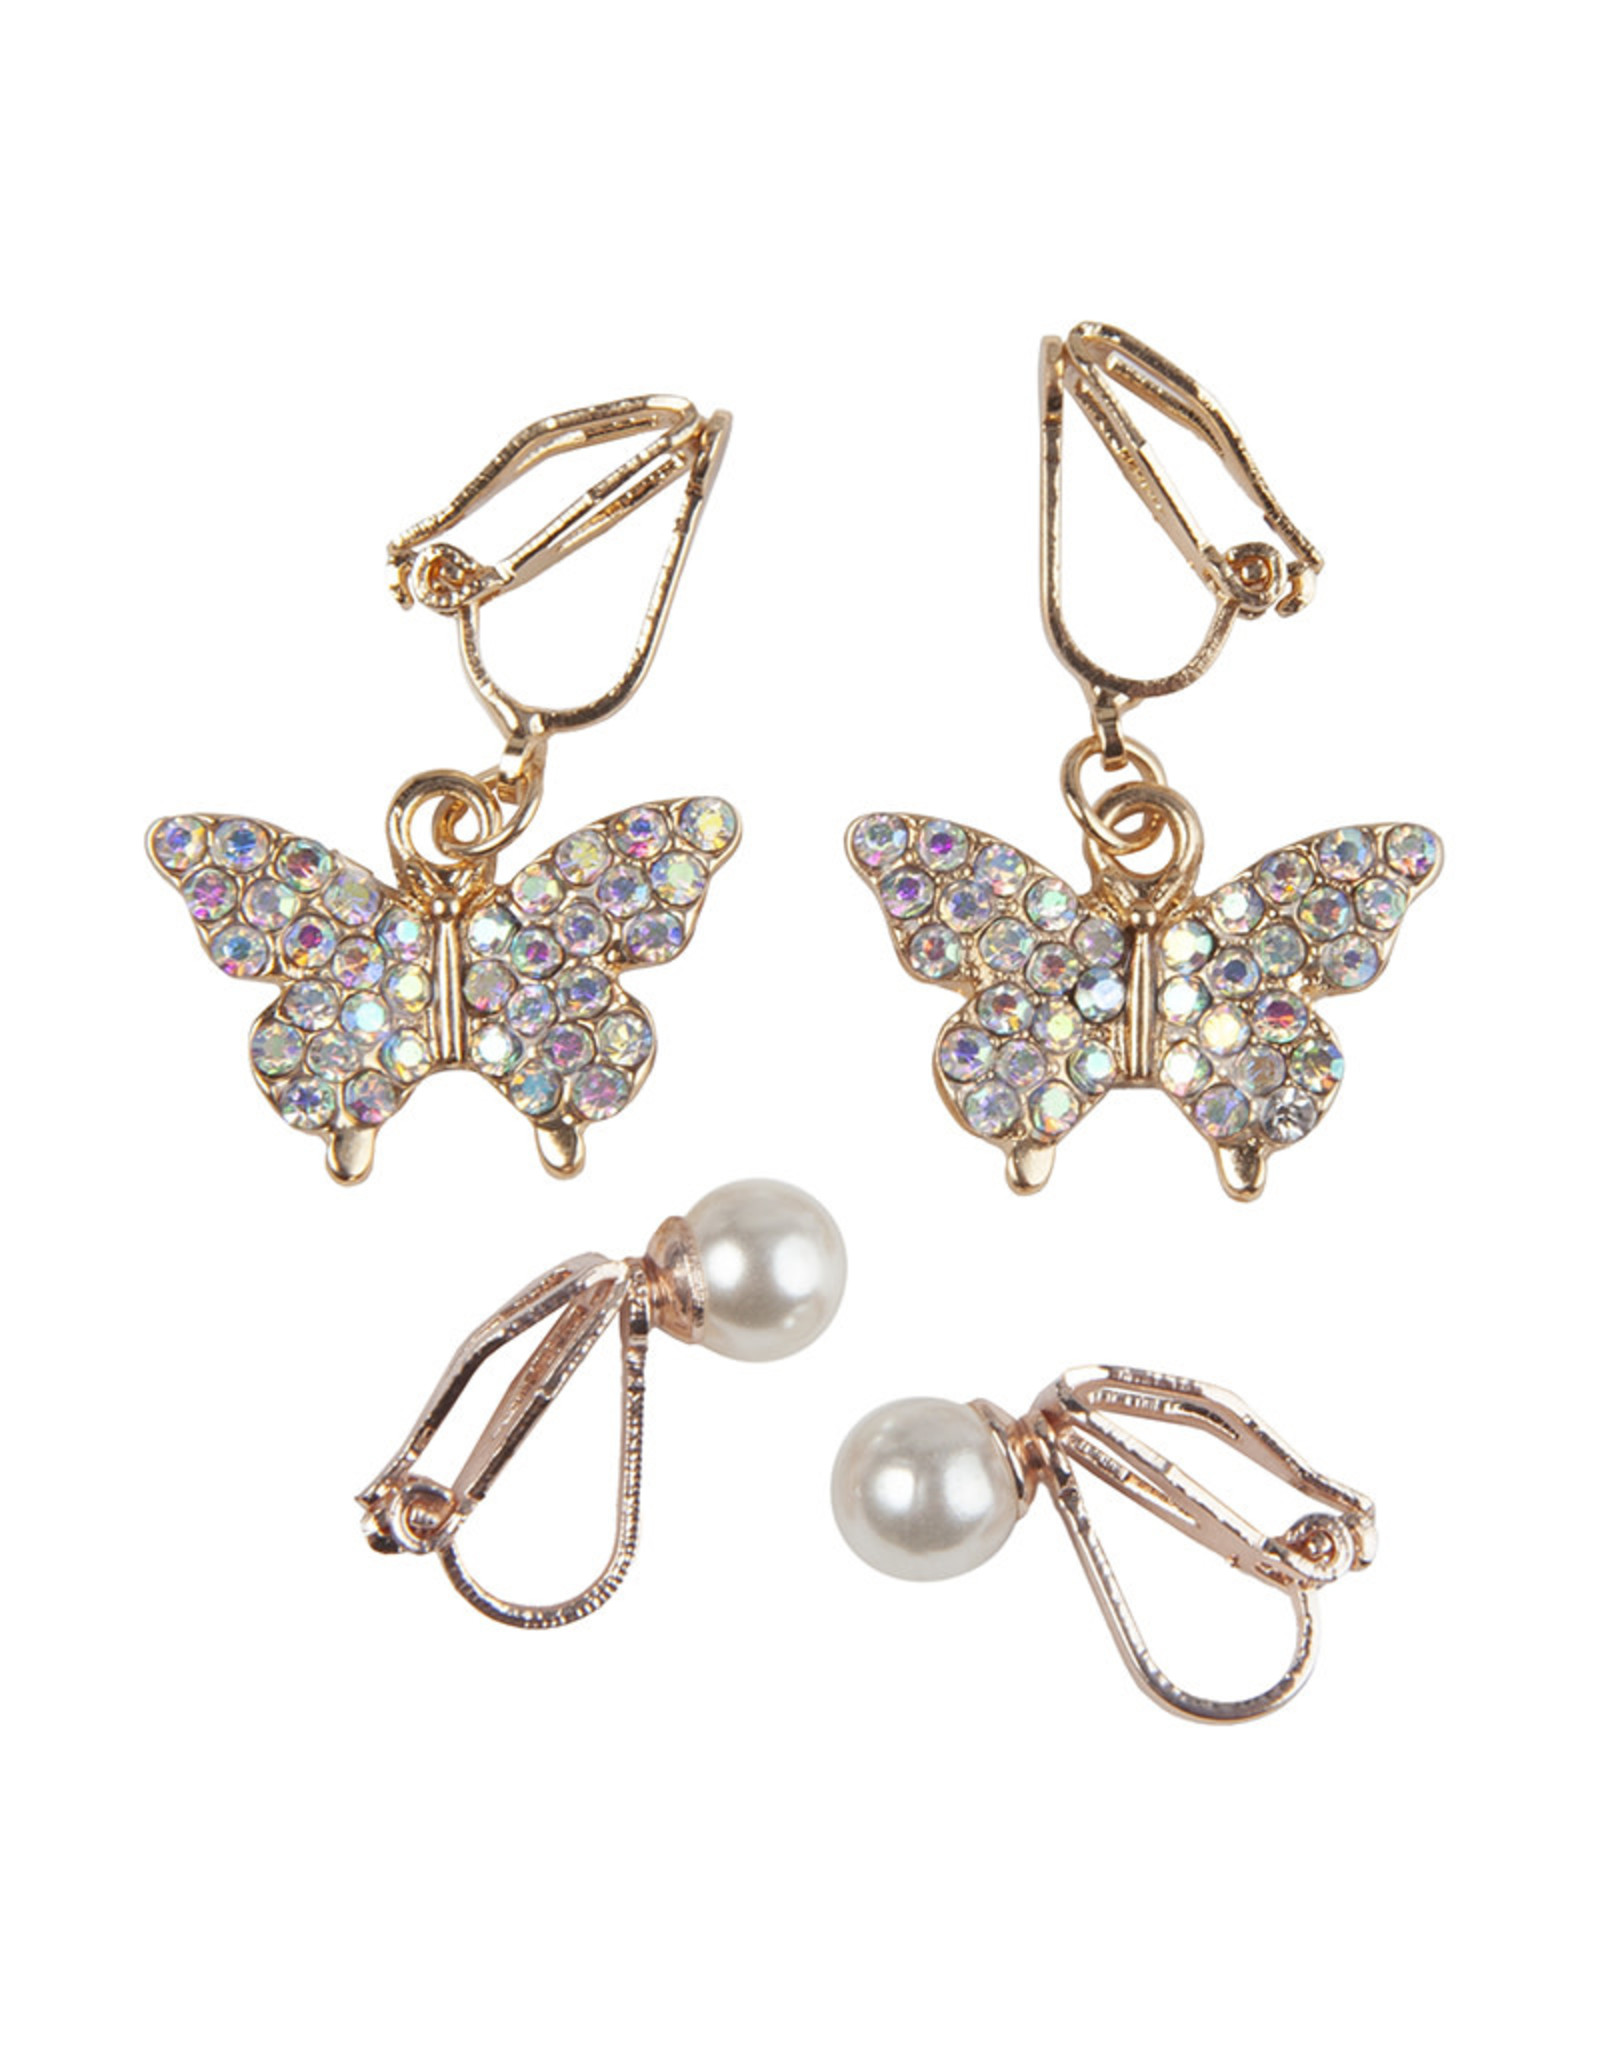 Boutique Butterfly Clip On Earrings, 2 Sets